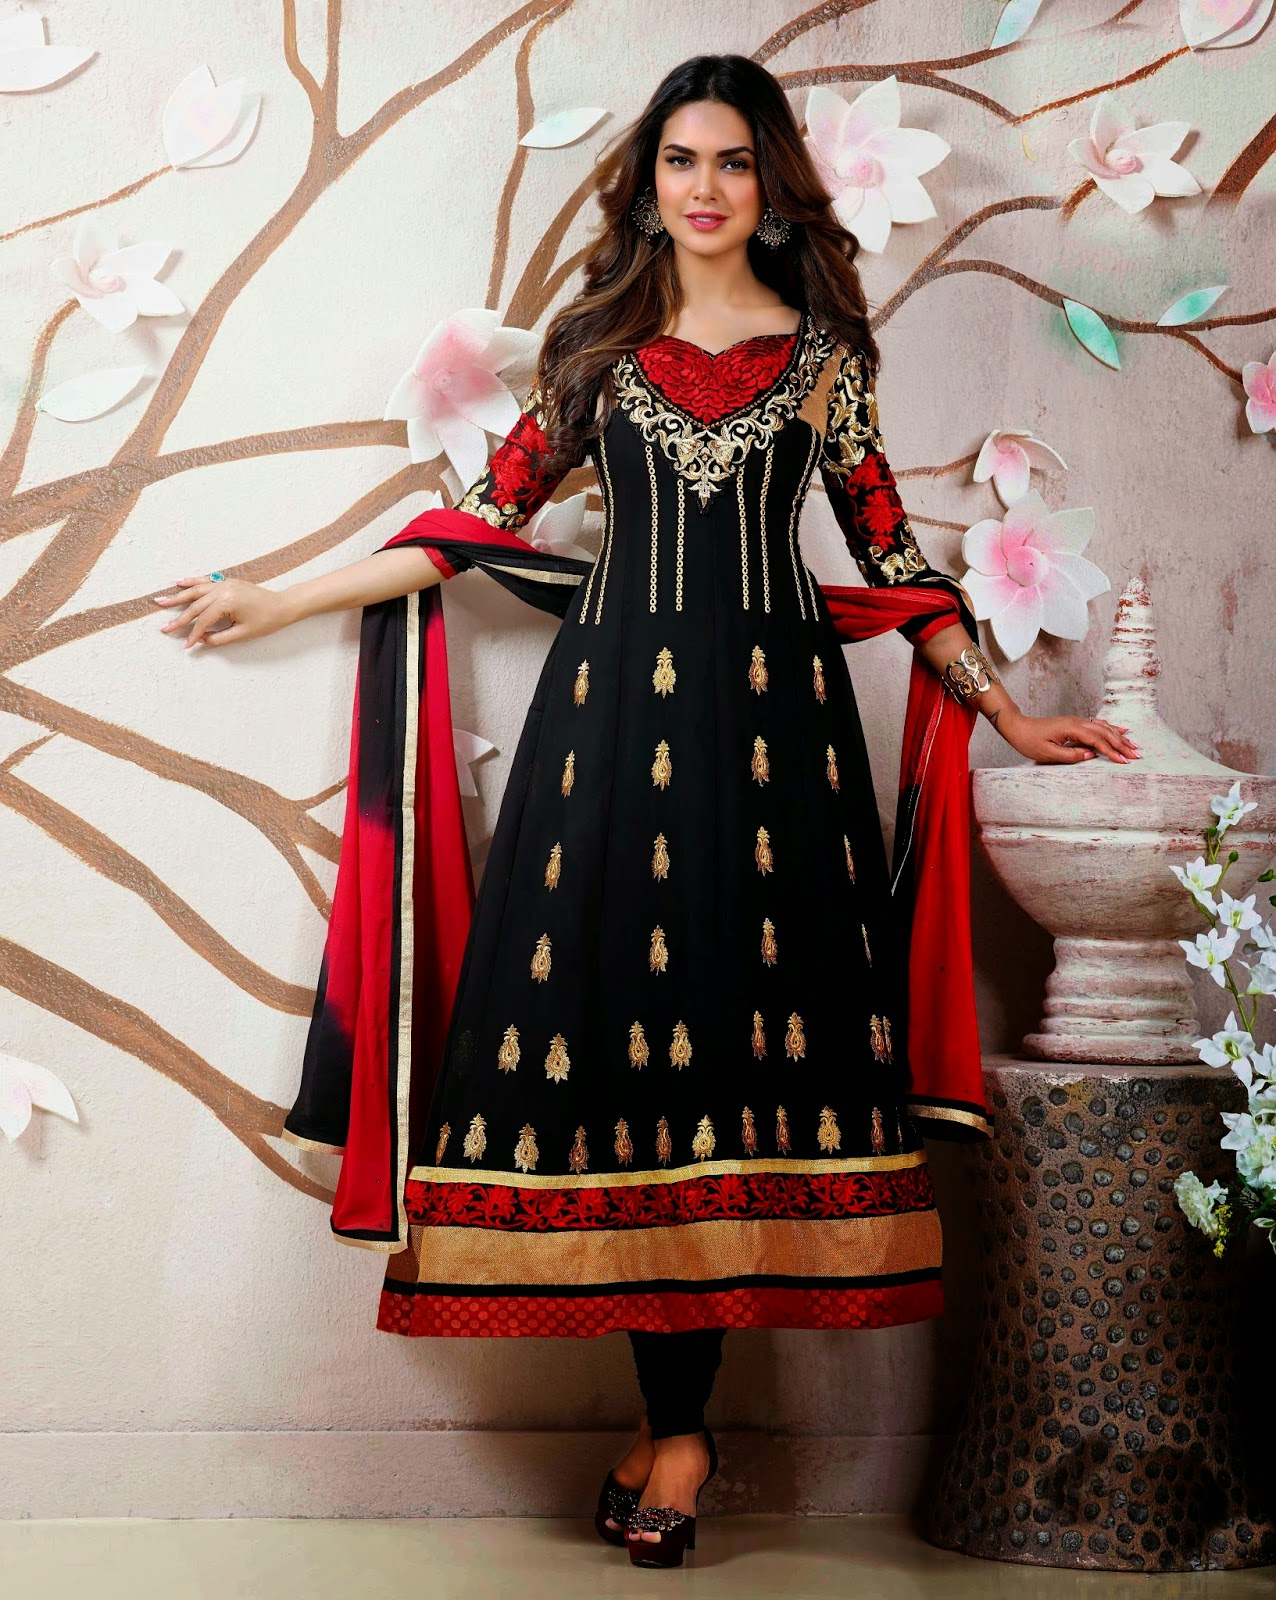 Esha Gupta Anarkali Suit Wallpapers Free Download